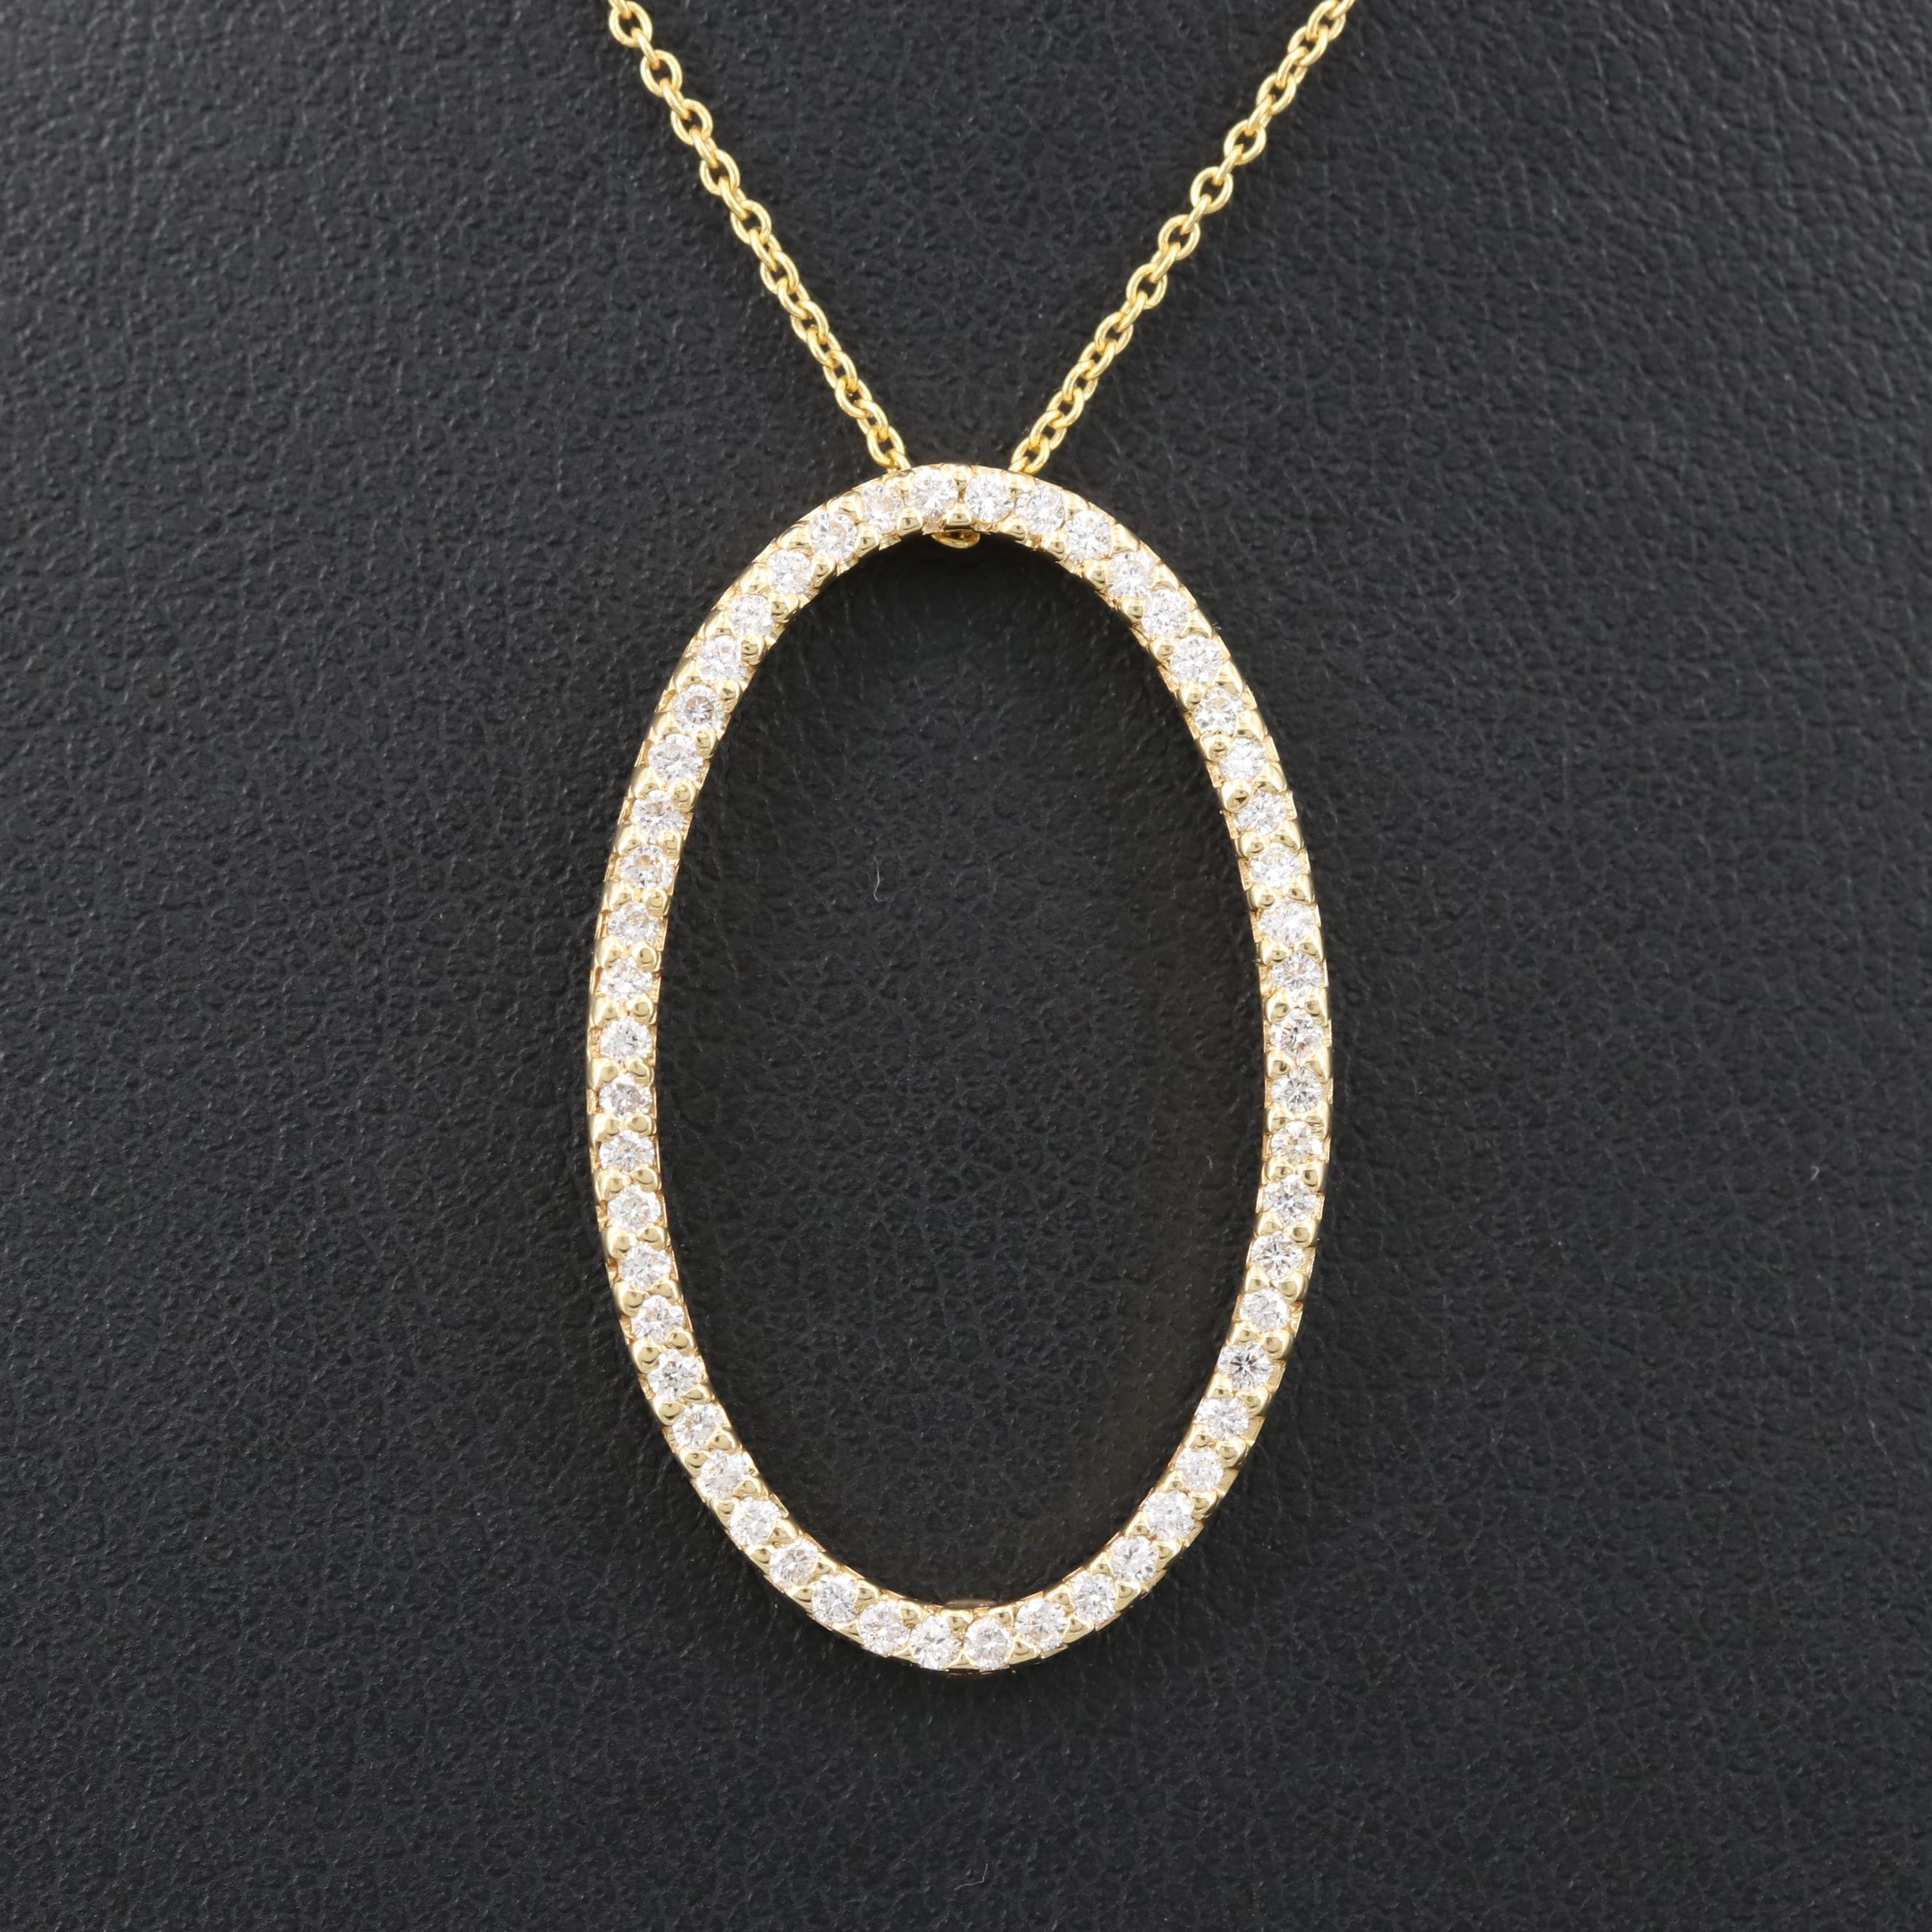 Roberto Coin 18K Yellow Gold Diamond Oval Pendant on Adjustable Chain